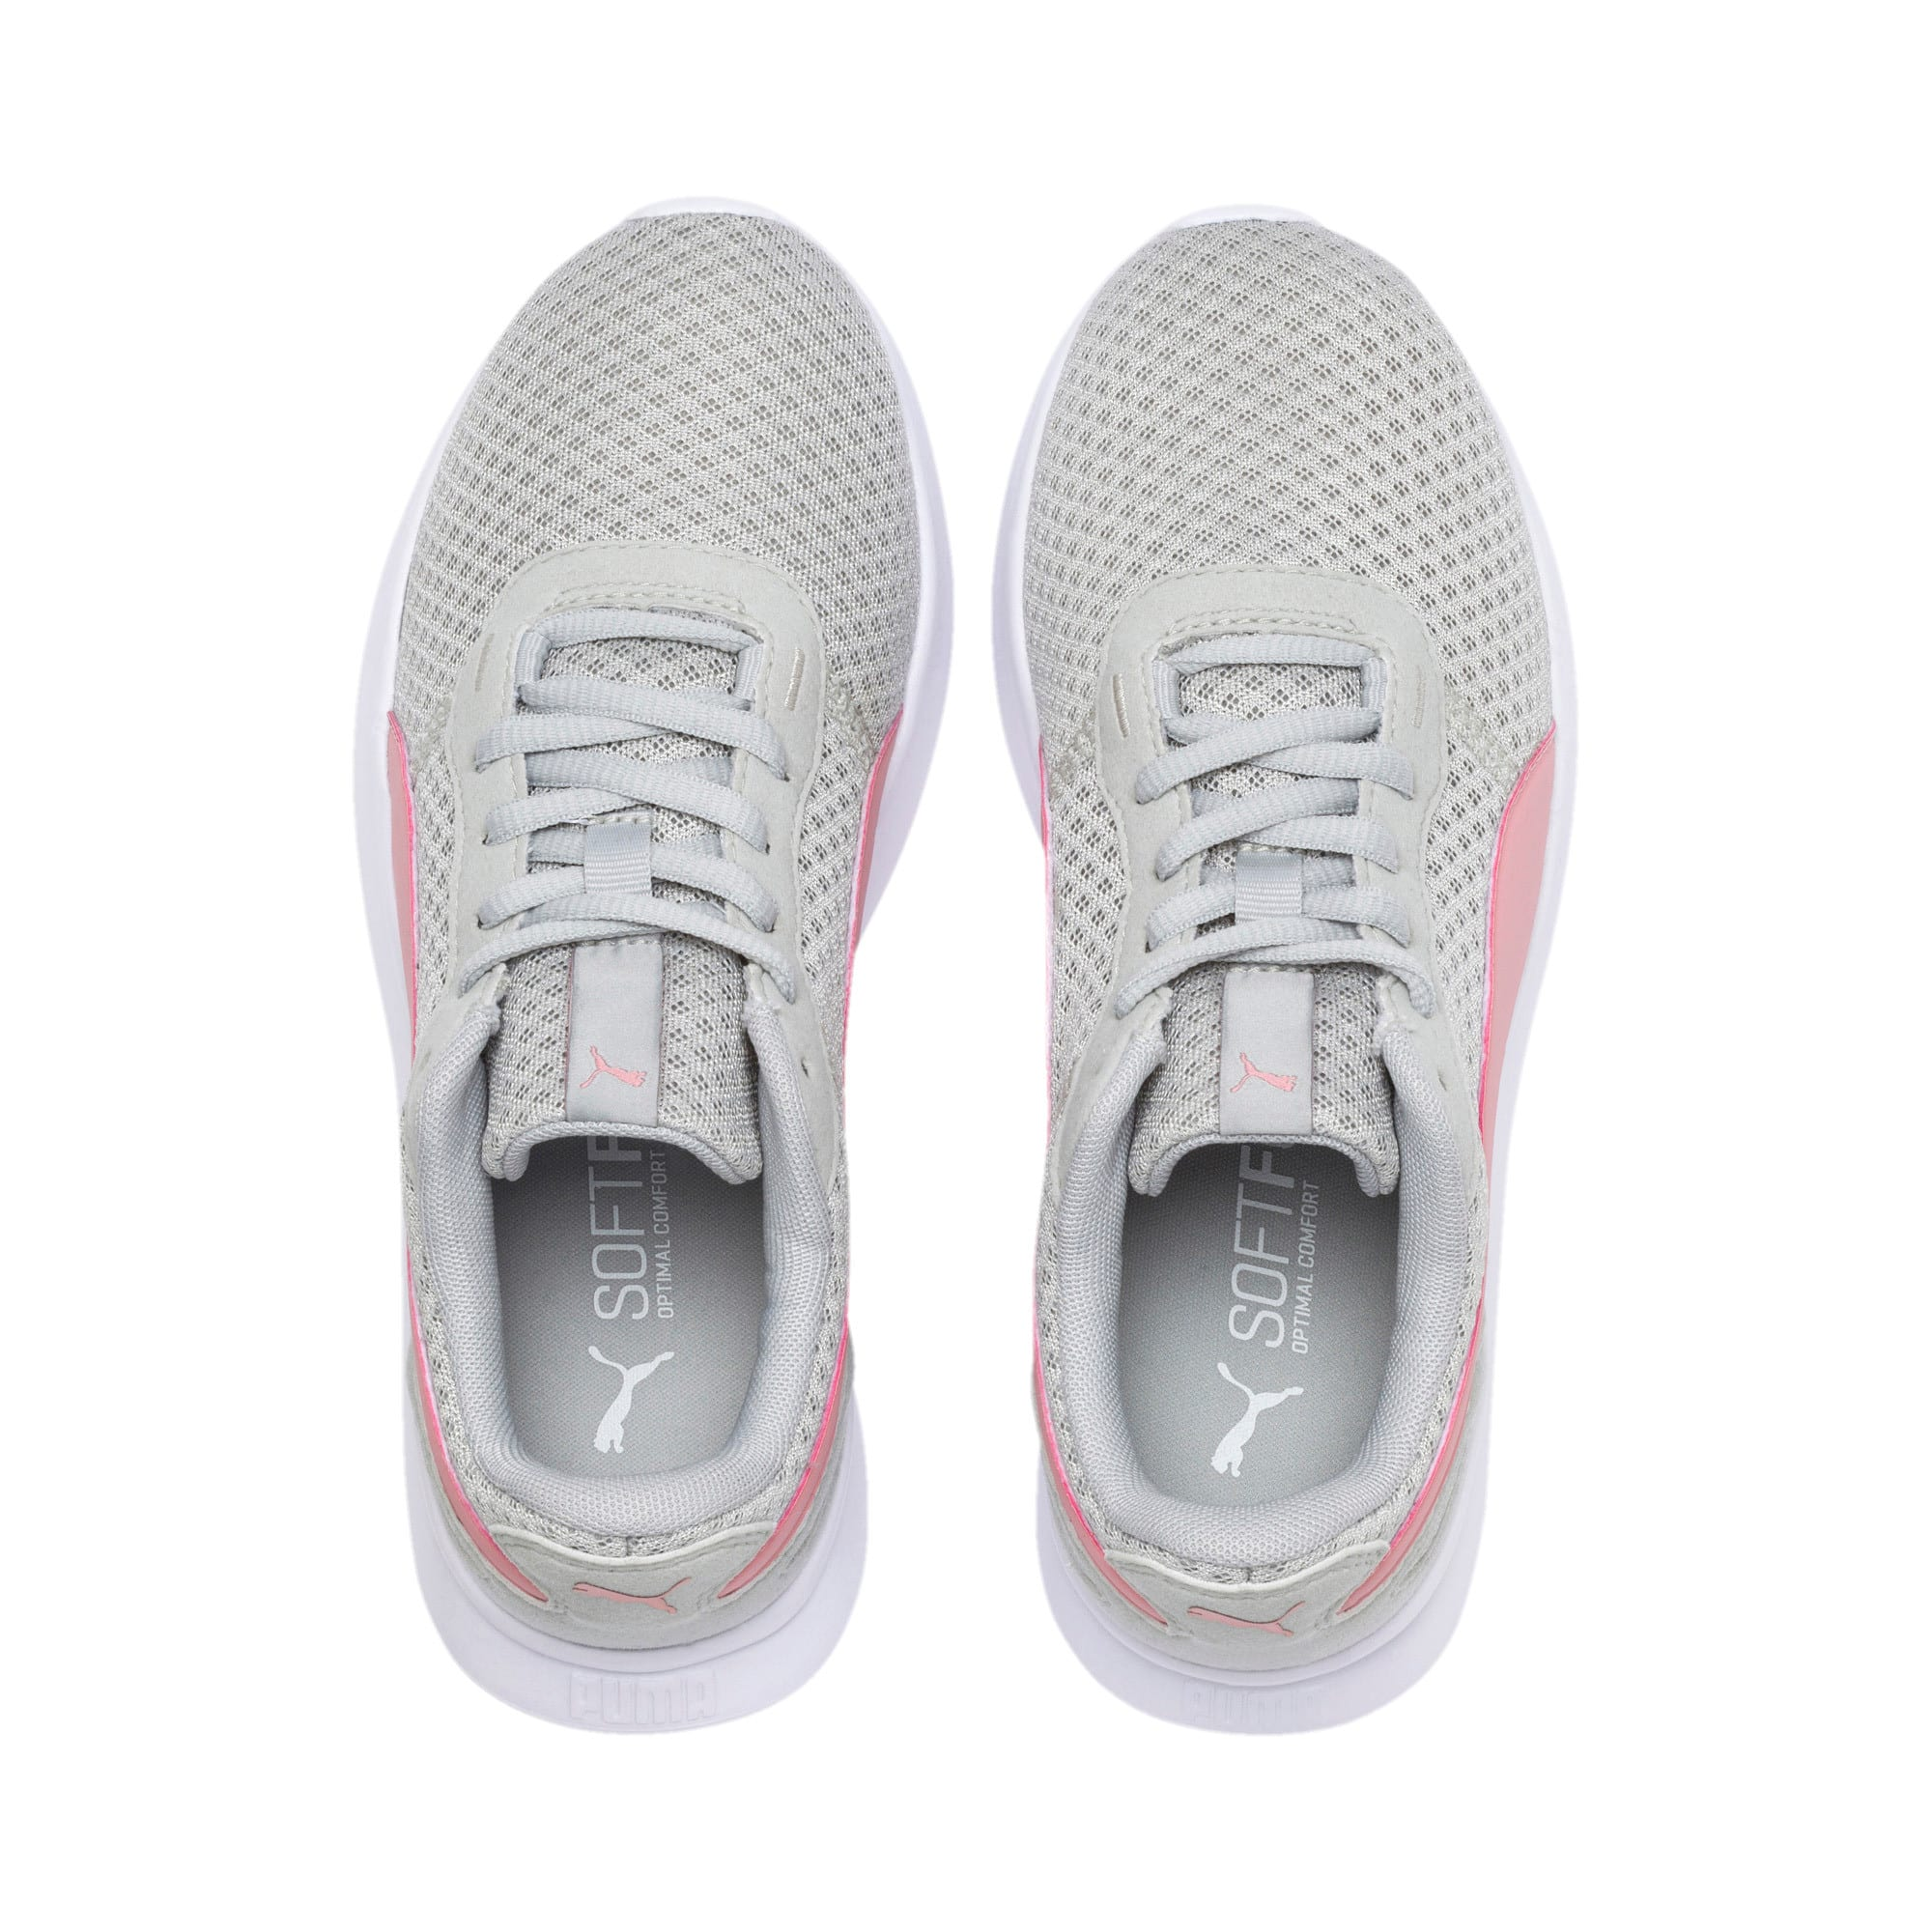 Thumbnail 6 of ST Activate Sneakers JR, Gray Violet-Bridal Rose, medium